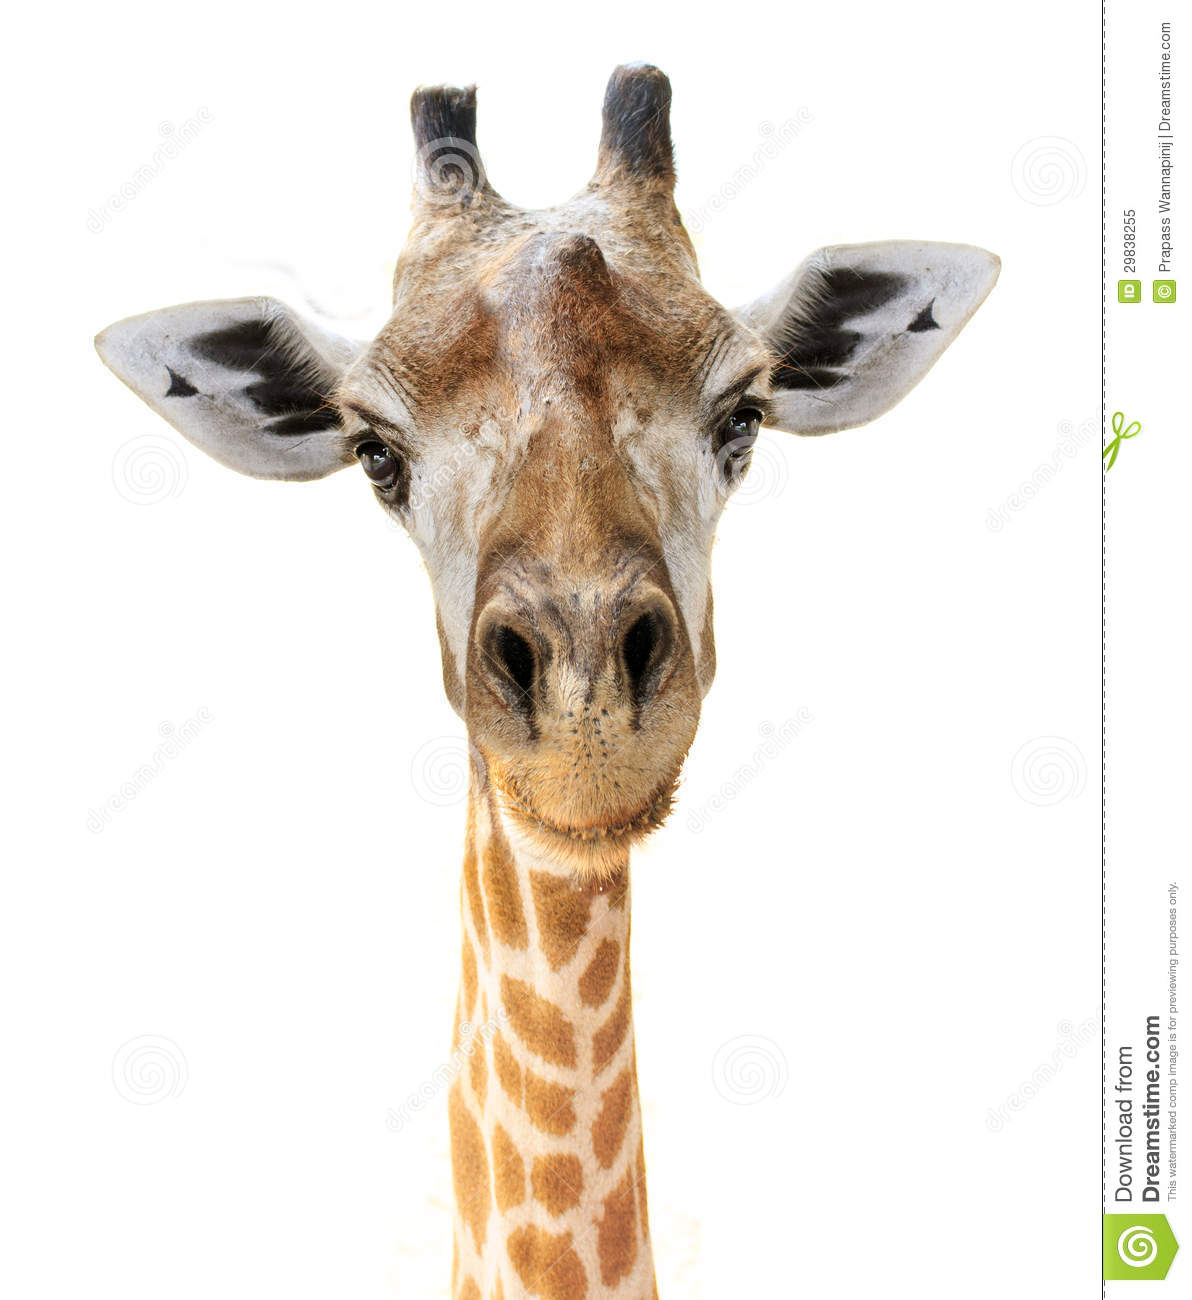 giraffe head white background - photo #8